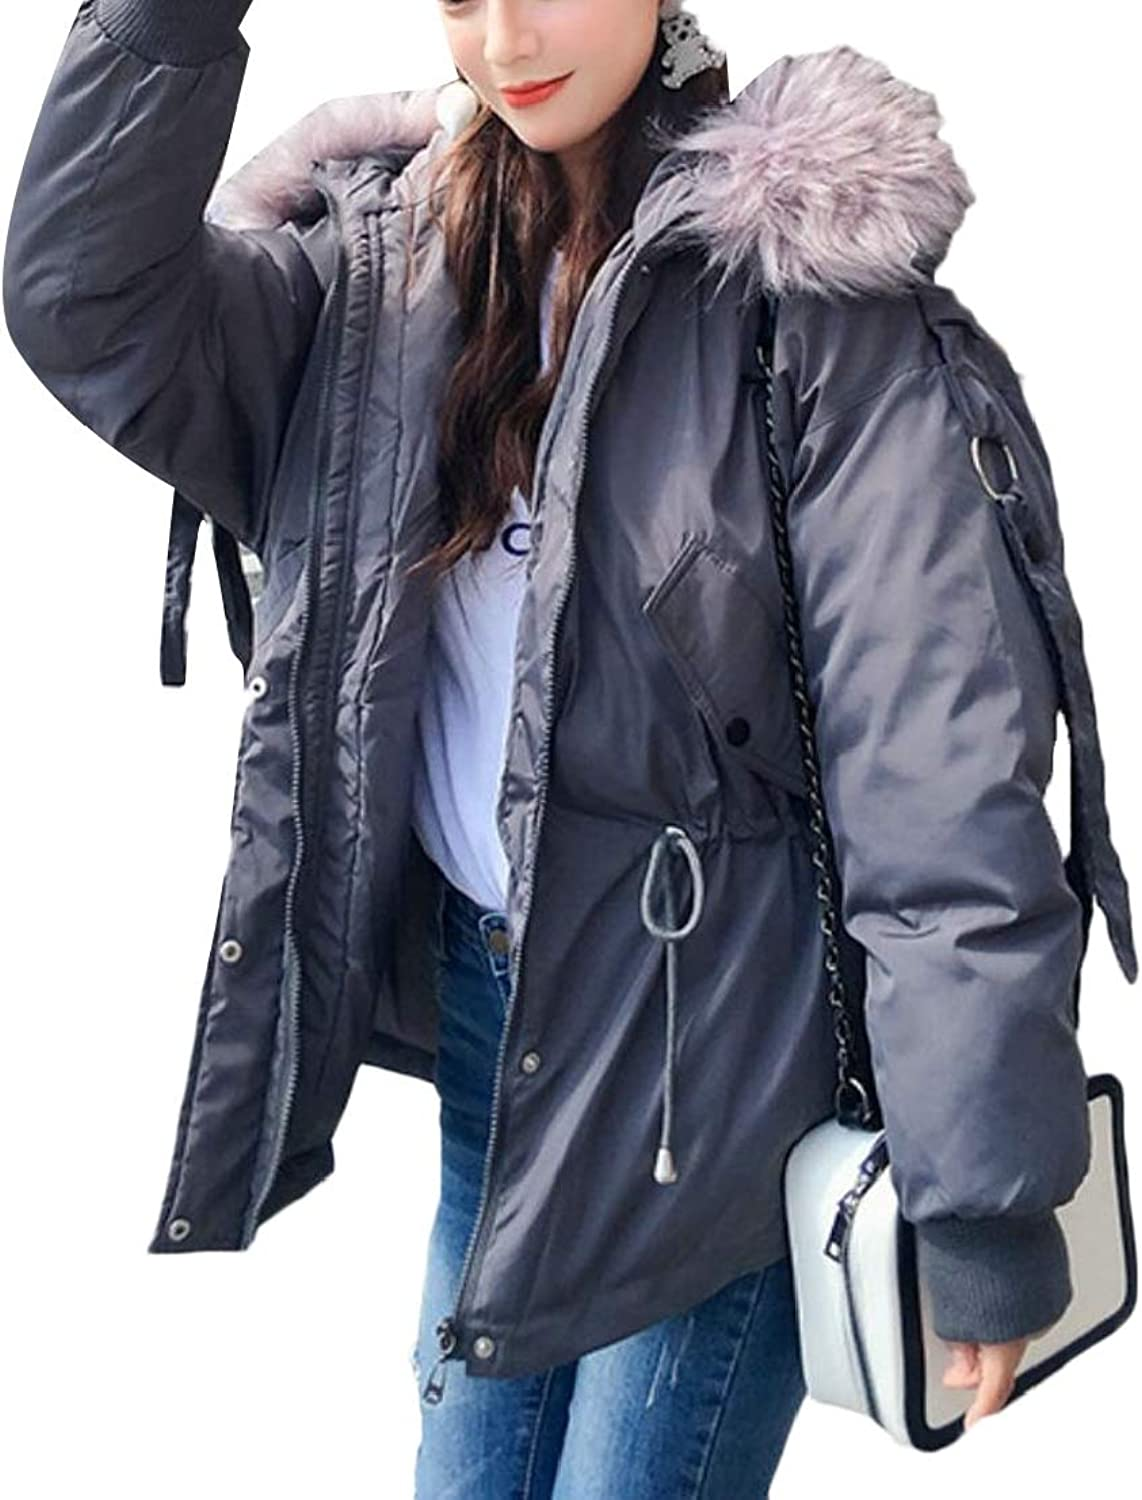 GenericWomen Padded Relaxed Fit Warm FauxFur Collar Zip Casual Down Jacket Coat